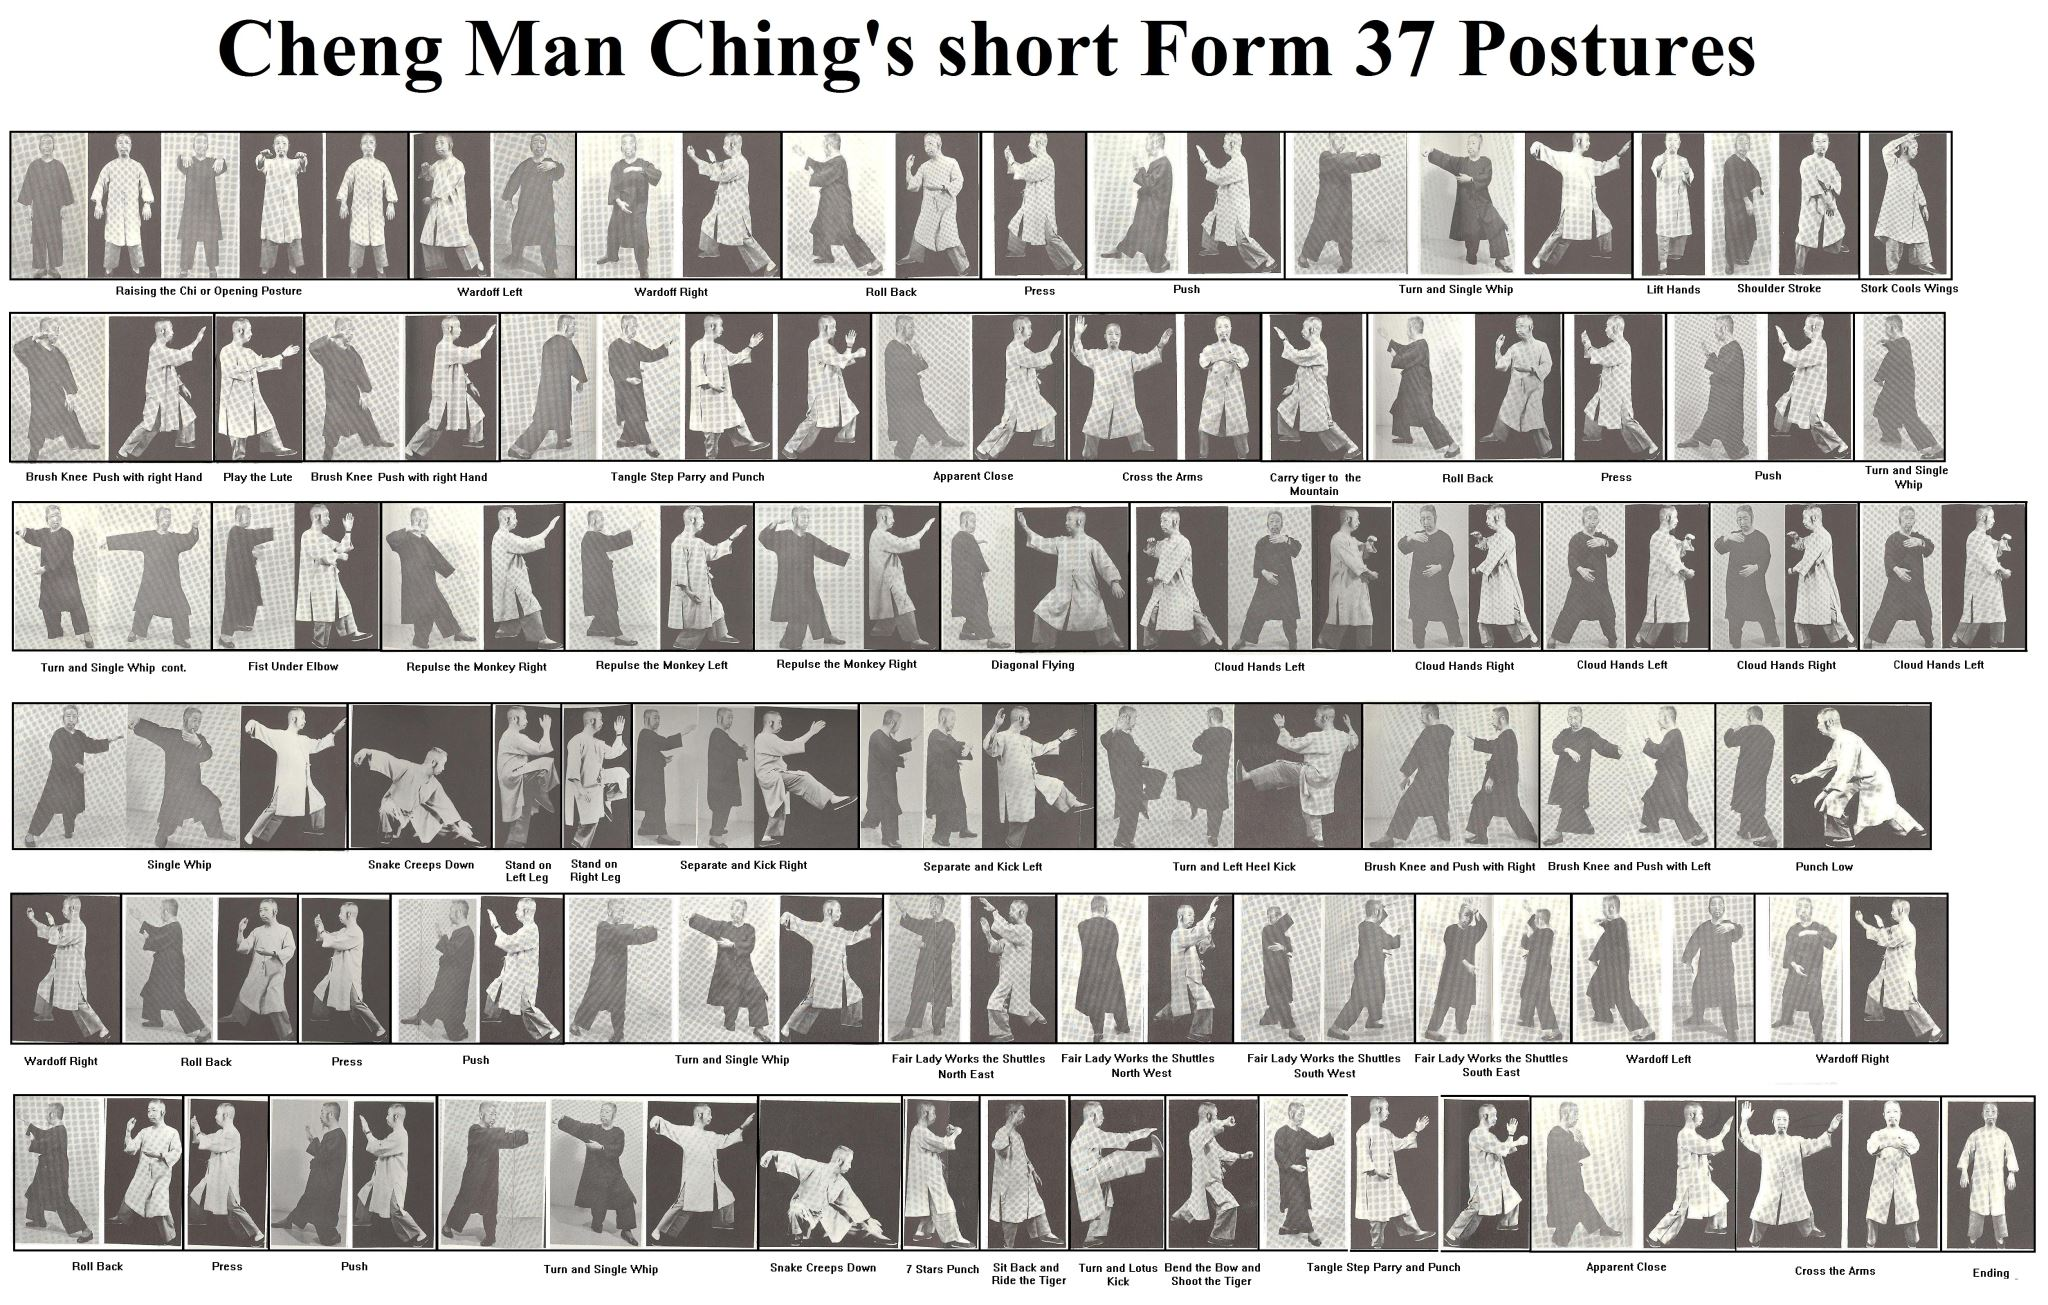 The 37 postures in our form